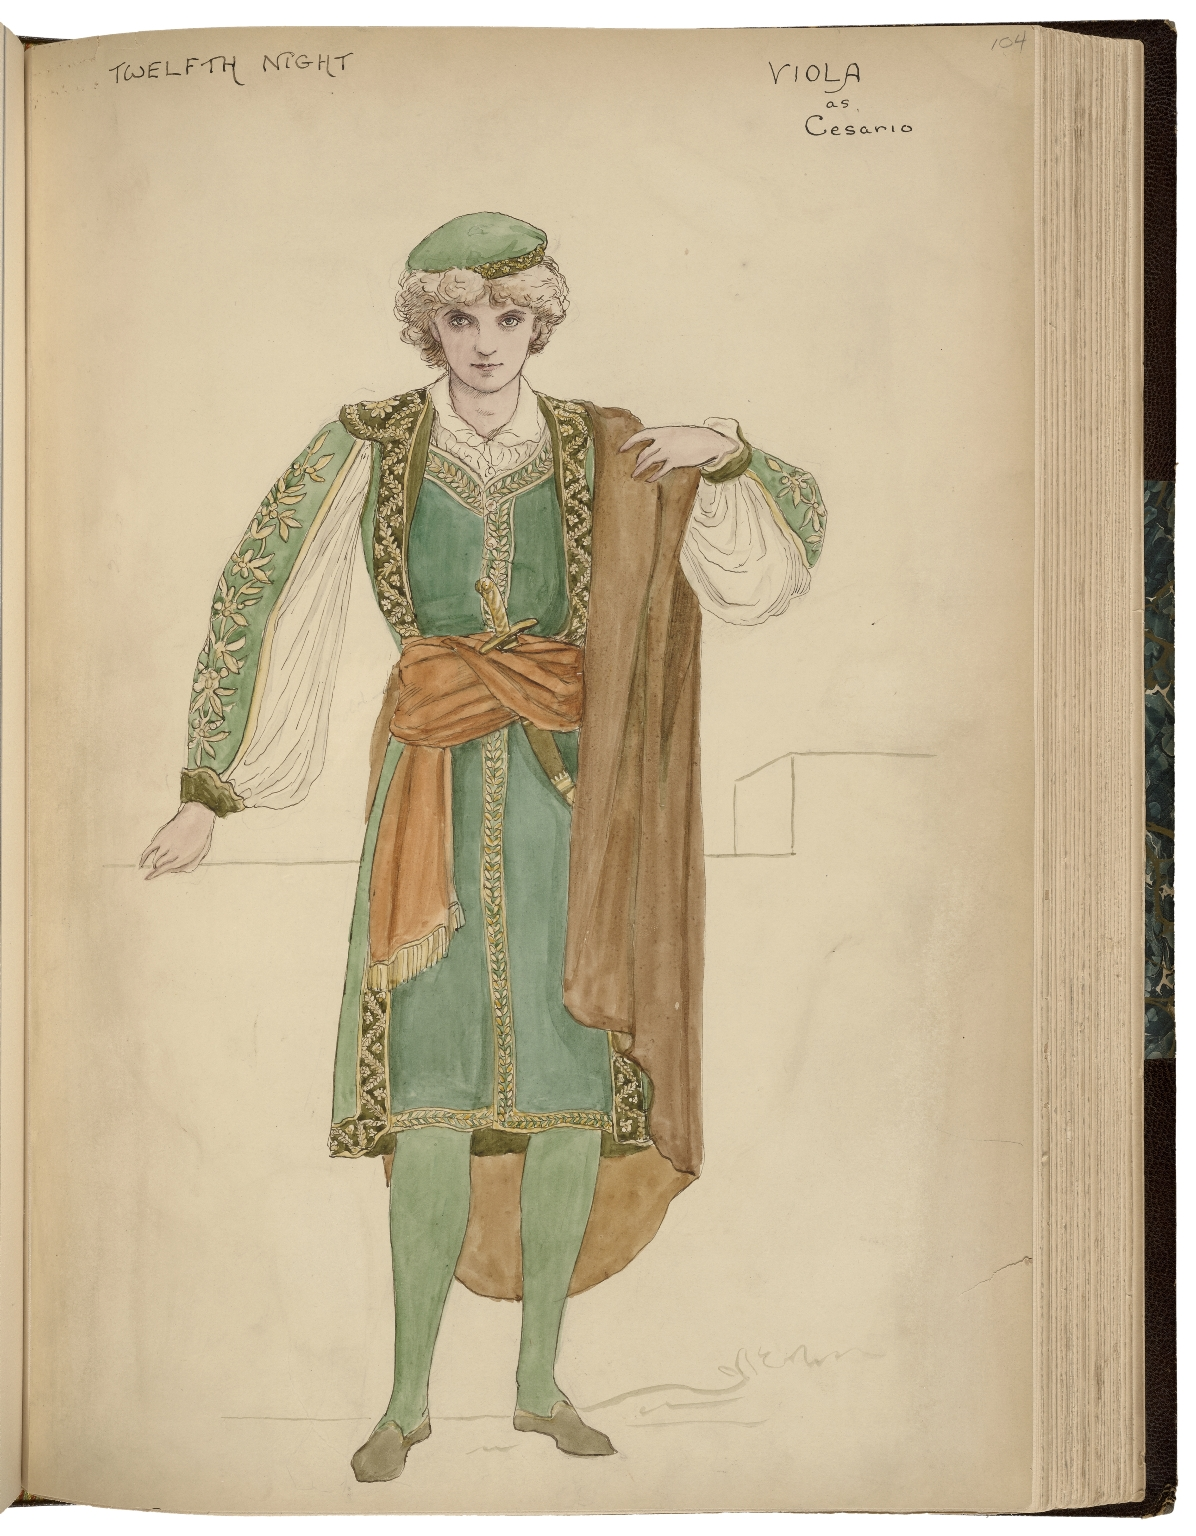 Costume designs for Daly's production of Twelfth night [graphic] / [Graham Roberston].